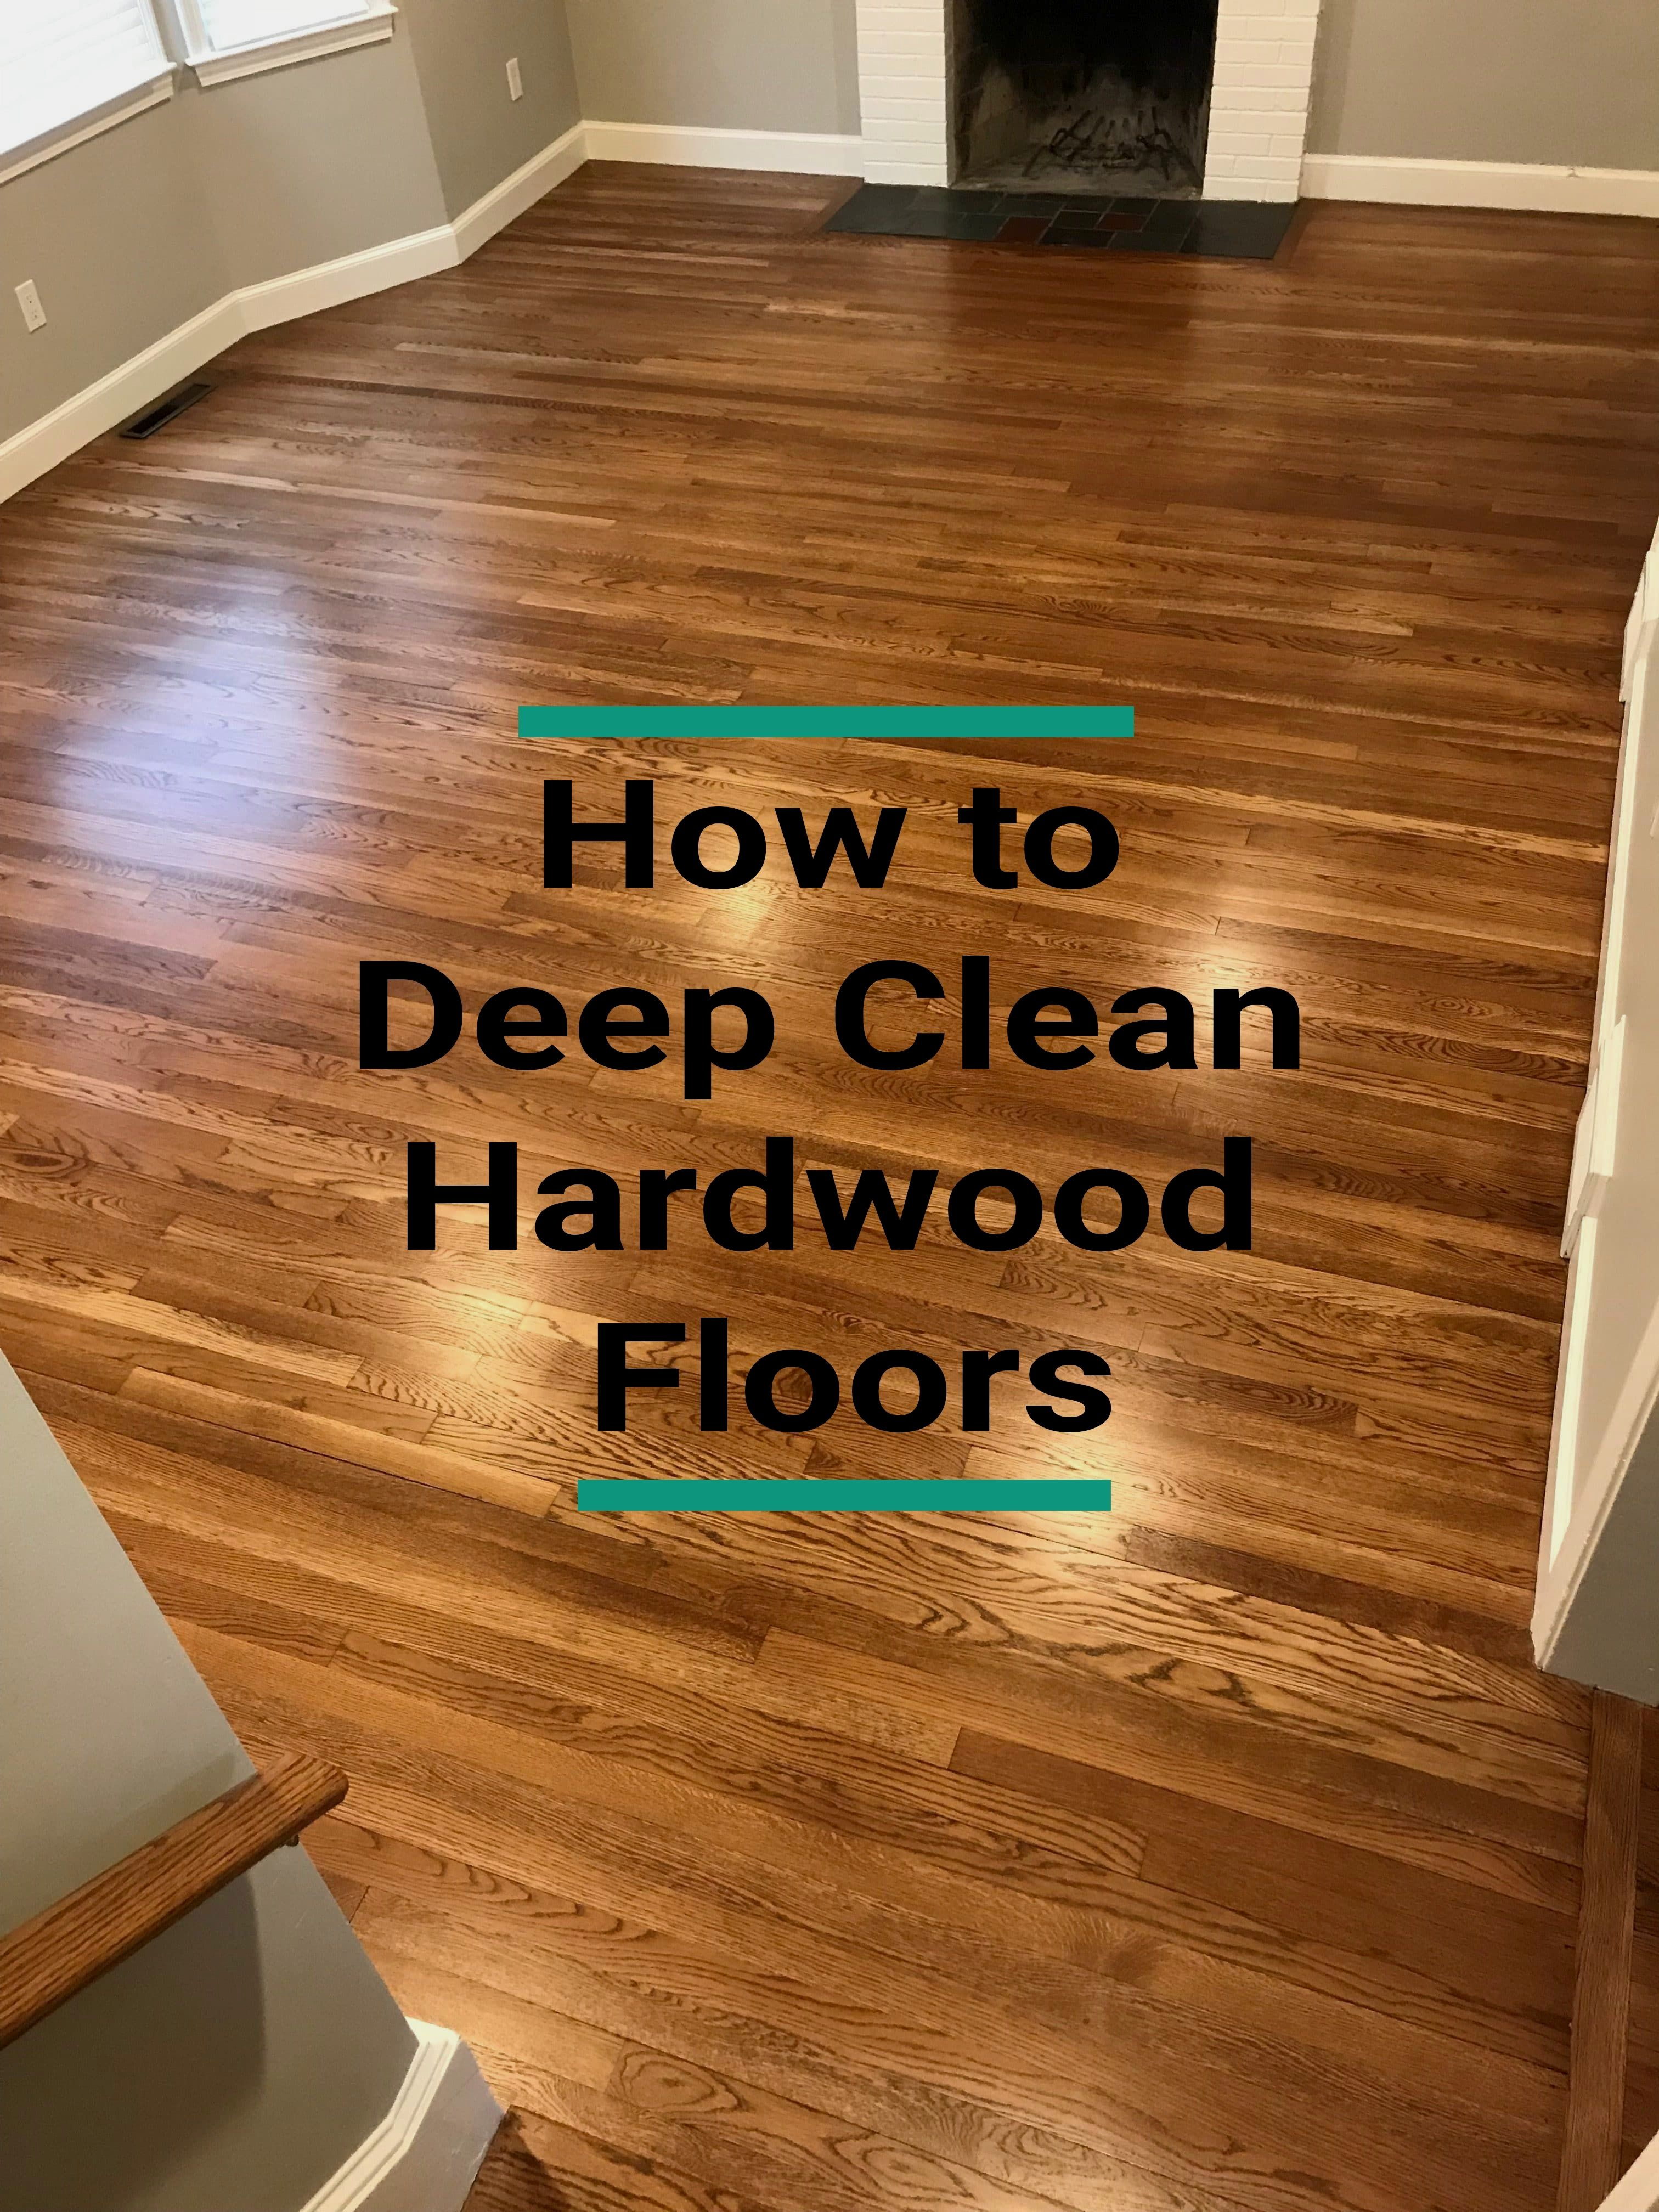 65 Amazing Cleaning Hacks In 2020 Clean Hardwood Floors Cleaning Wood Floors Cleaning Wood